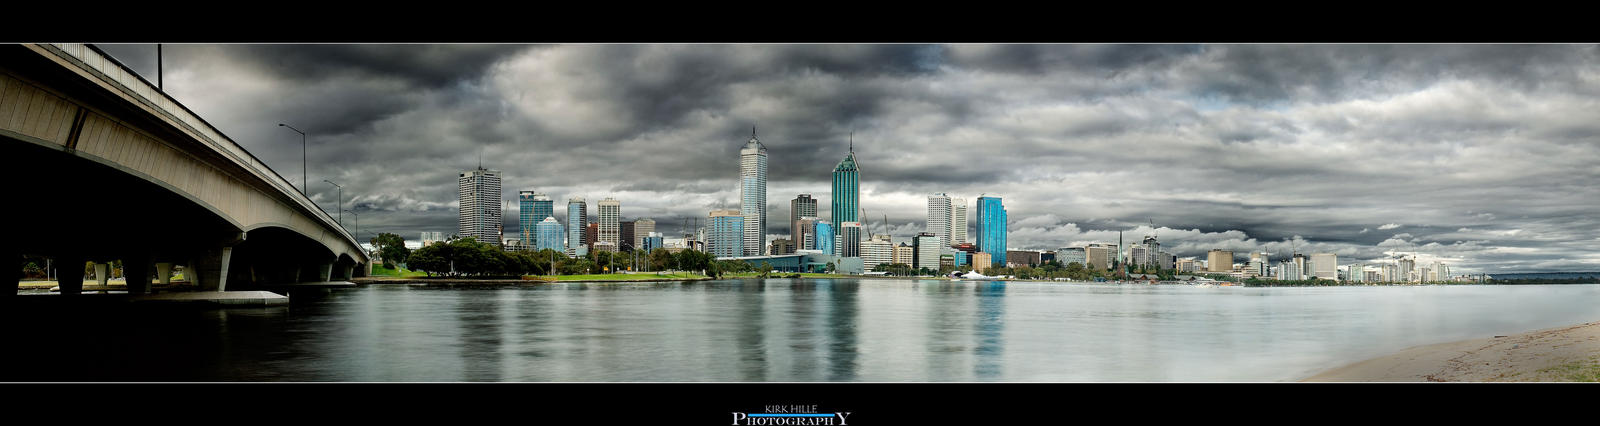 Overcast Perth by Furiousxr